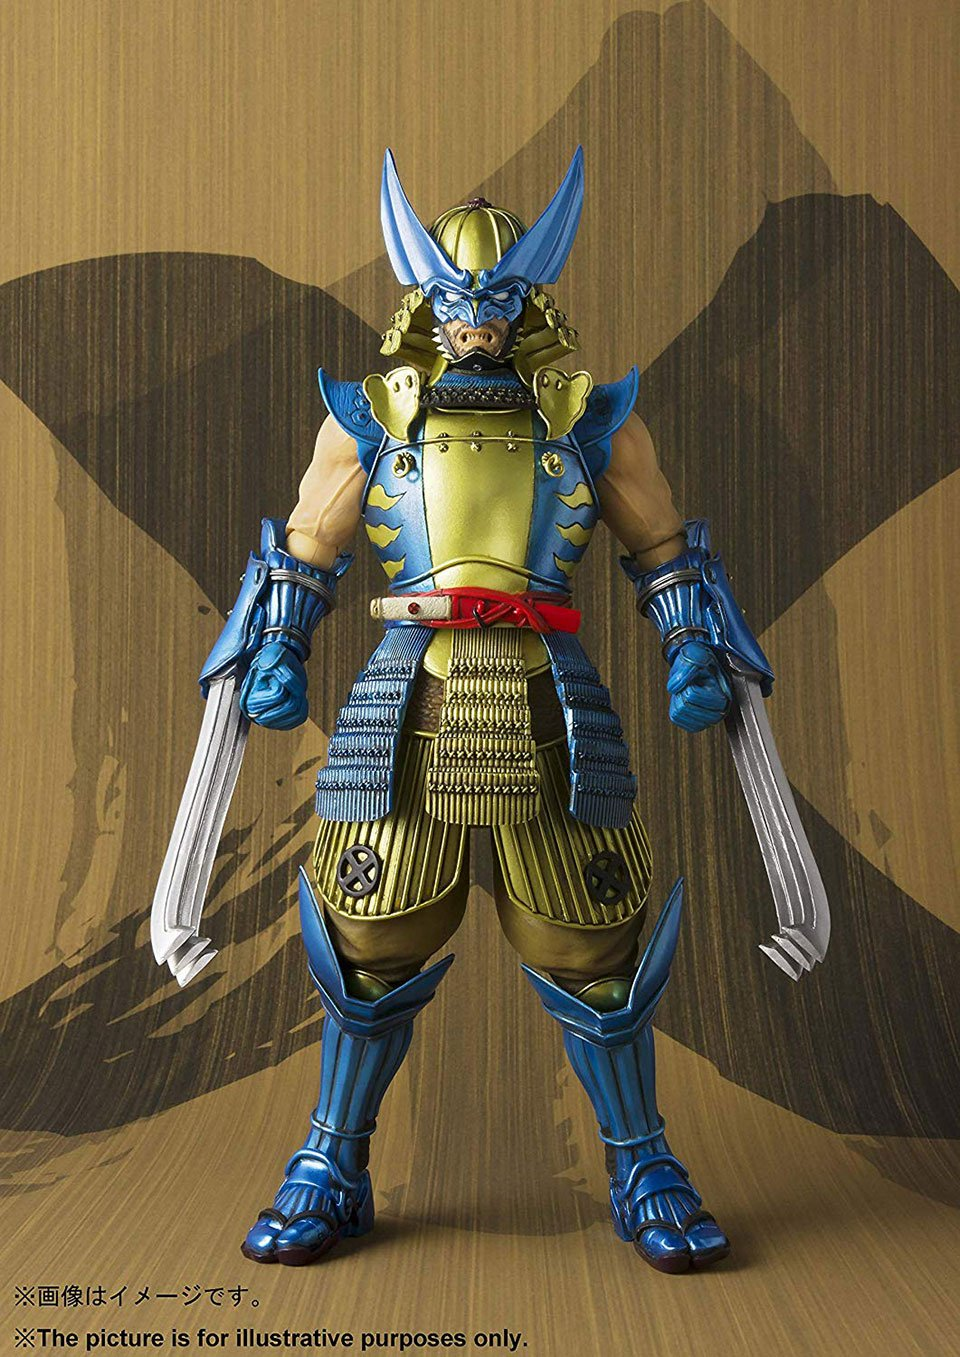 Bandai Turned Wolverine Into A Samurai In This Badass